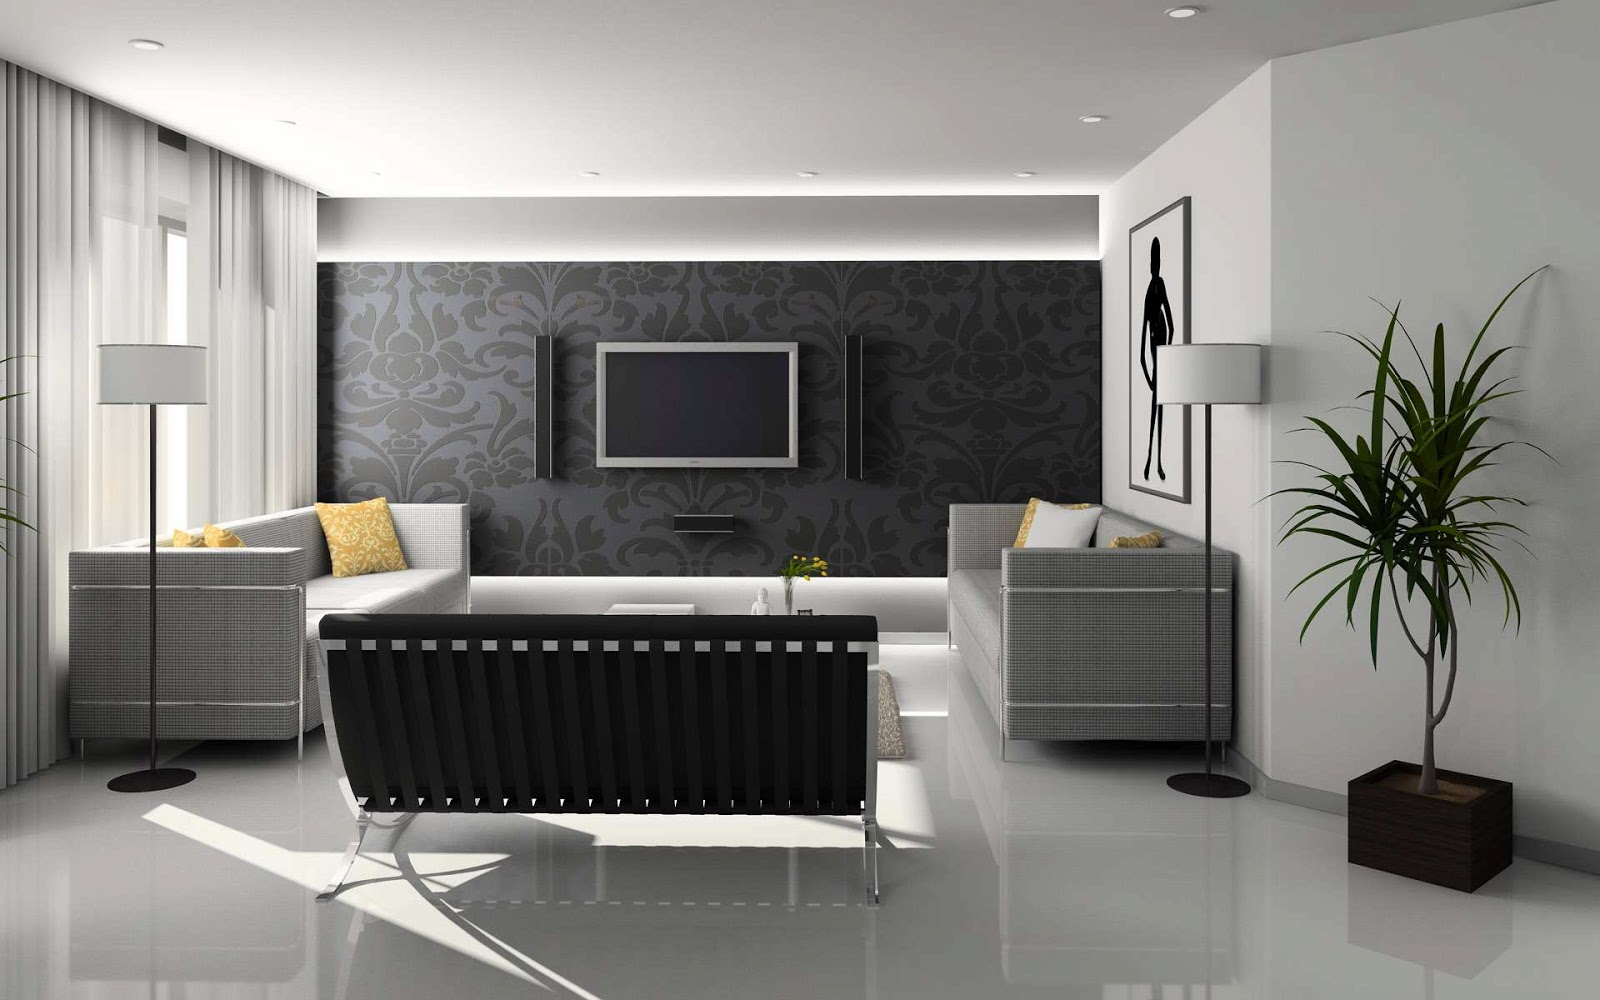 Interior Design Ideas  Interior Designs  Home Design Ideas  New Home     Students will learn all aspects of new home interior design such as  wallpapering is not as popular as it once was as many people have found  that removing